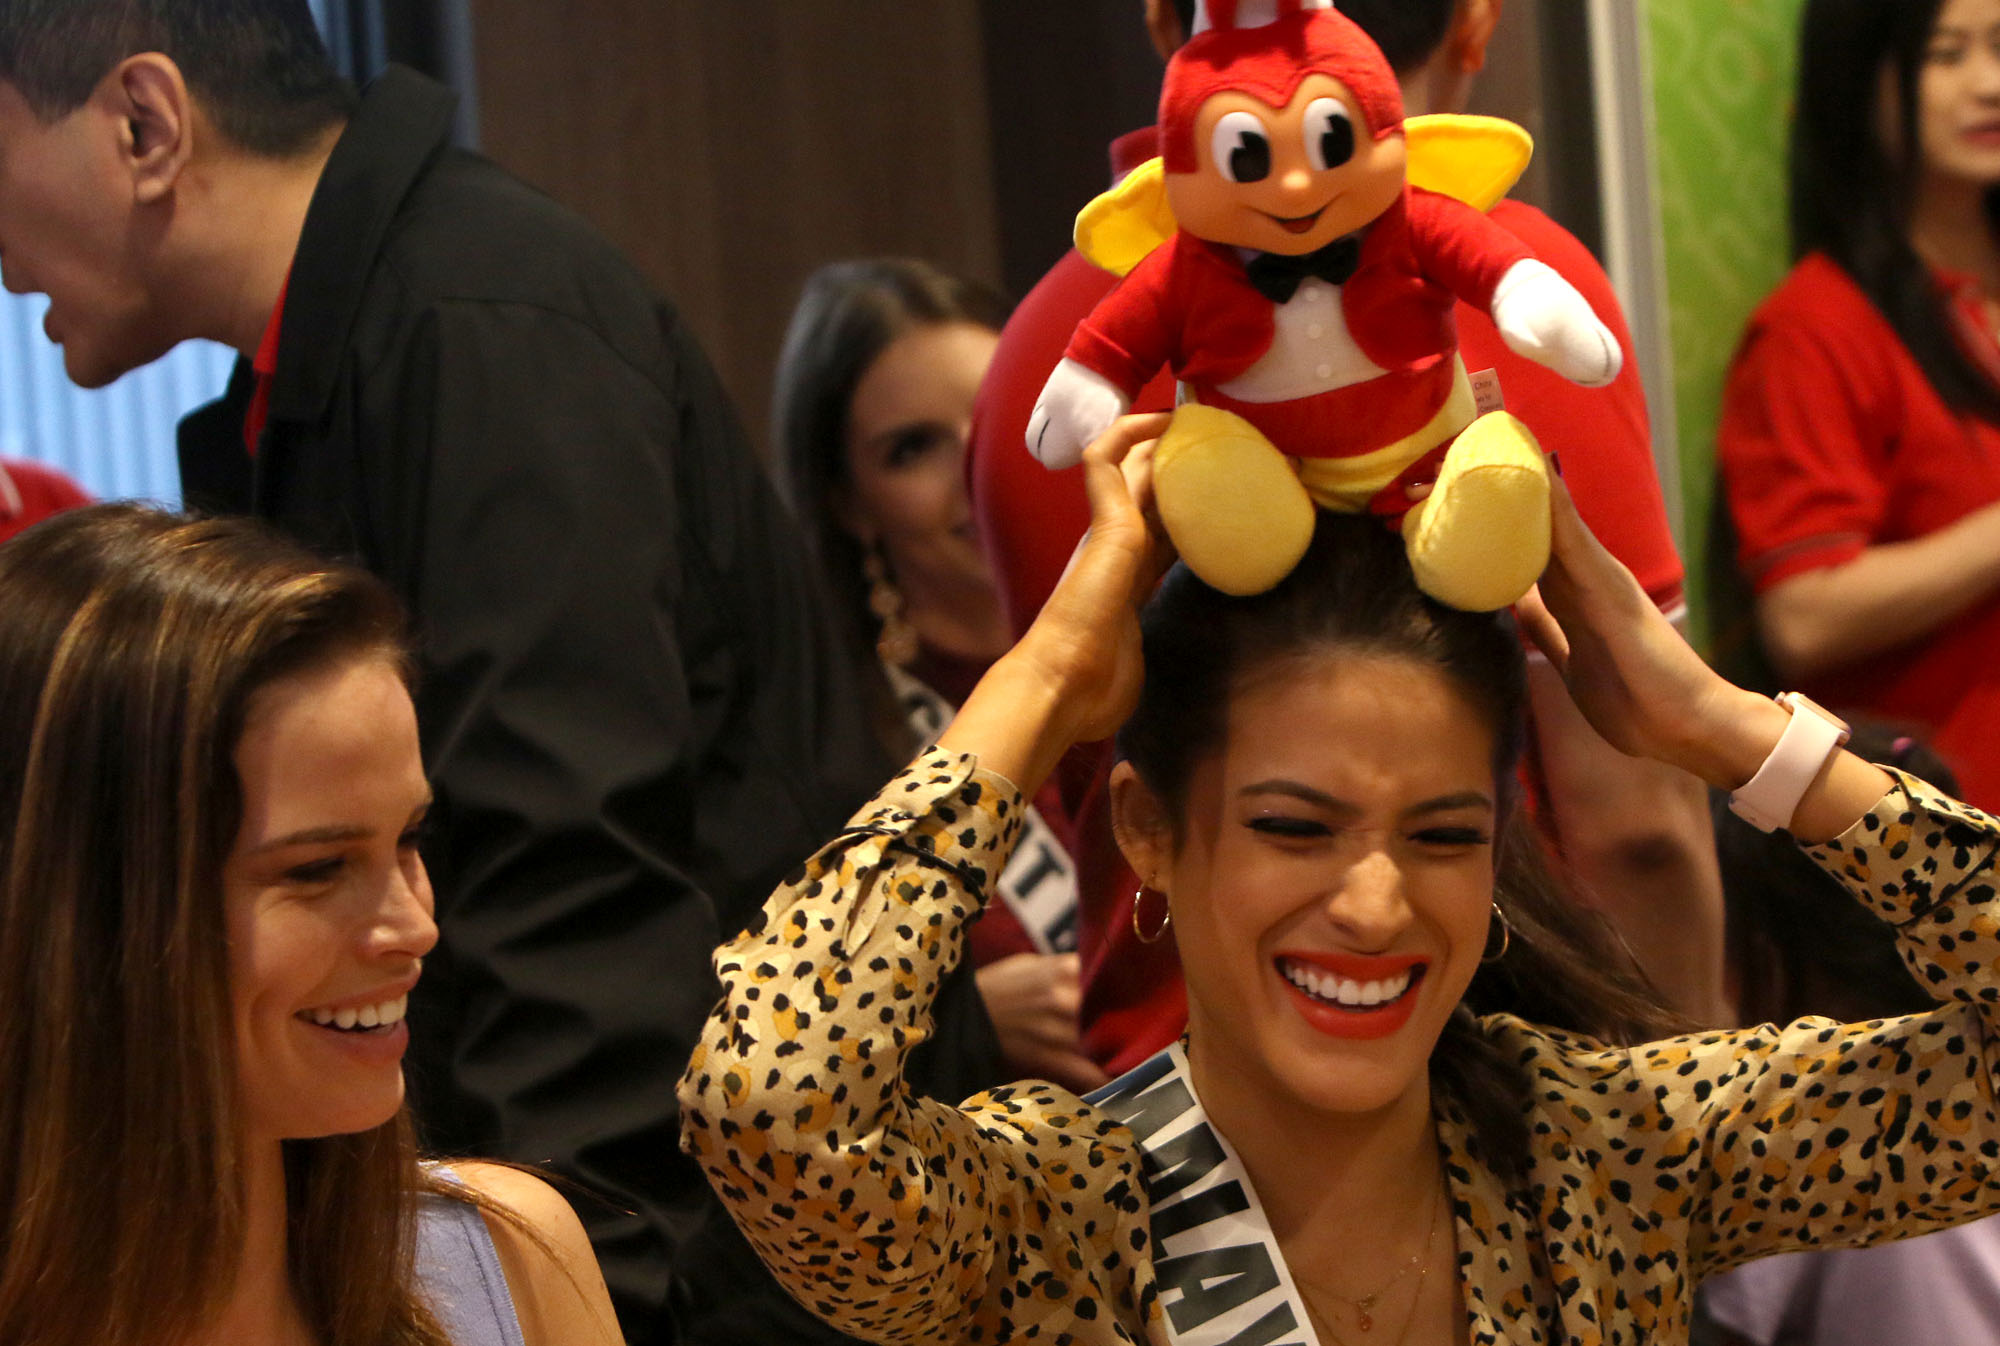 Malaysia's Samantha James crowns herself with a Jollibee stuffed toy to the amusement of Netherlands' Nicky Opheij